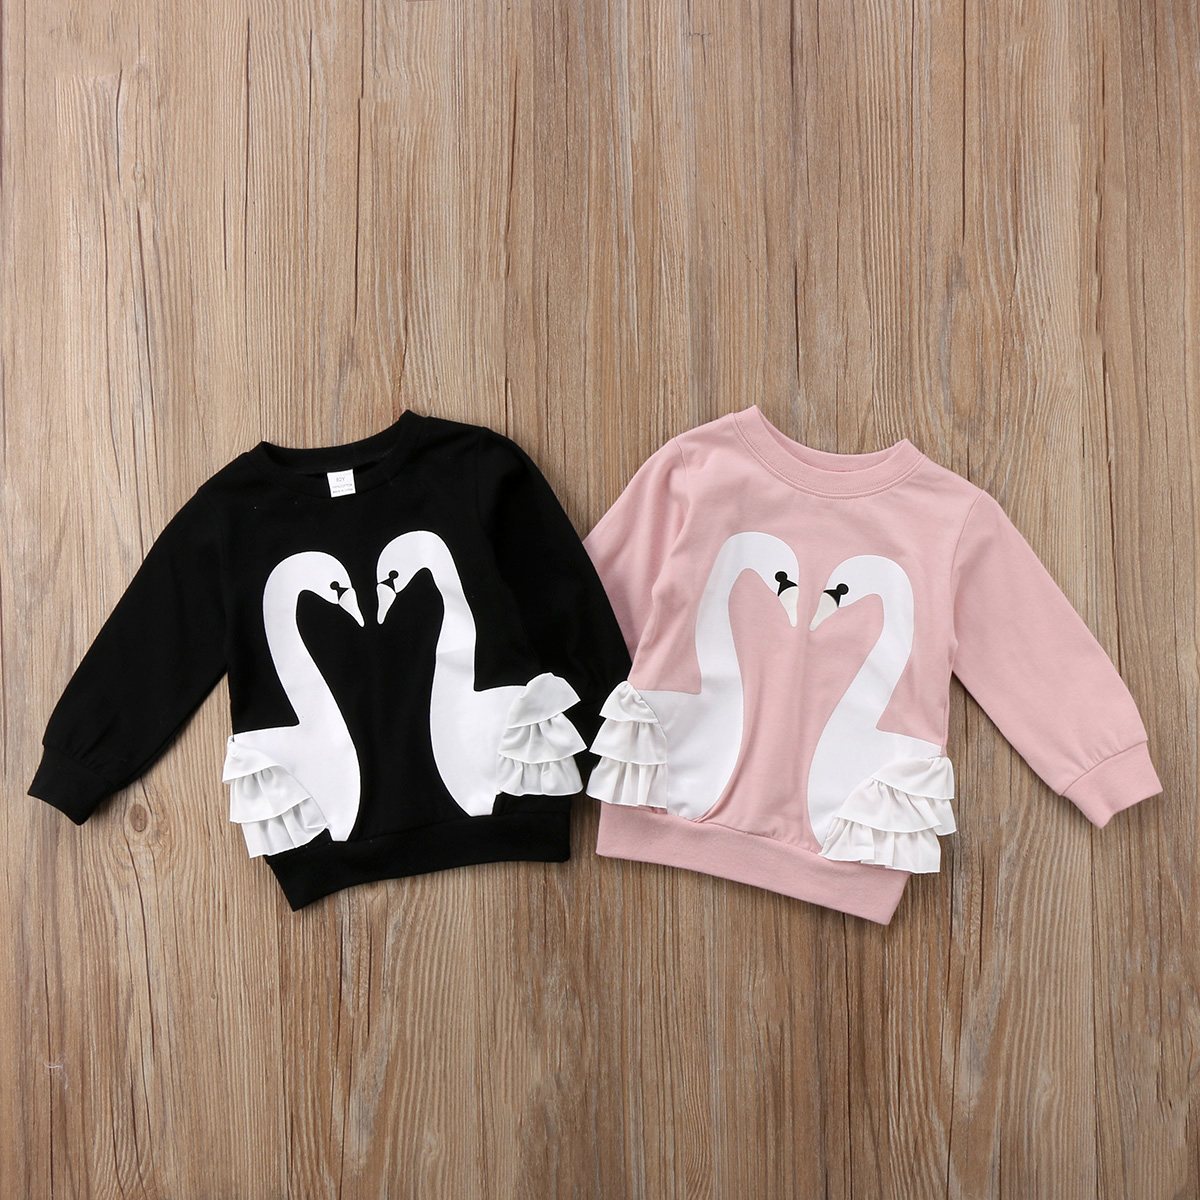 Toddler Kid Baby Girl Cotton Cartoon Long Sleeve Lace T-shirt Top Sweatshirt Pullover karen scott 6198 new womens yellow cotton solid pullover top shirt plus 1x bhfo